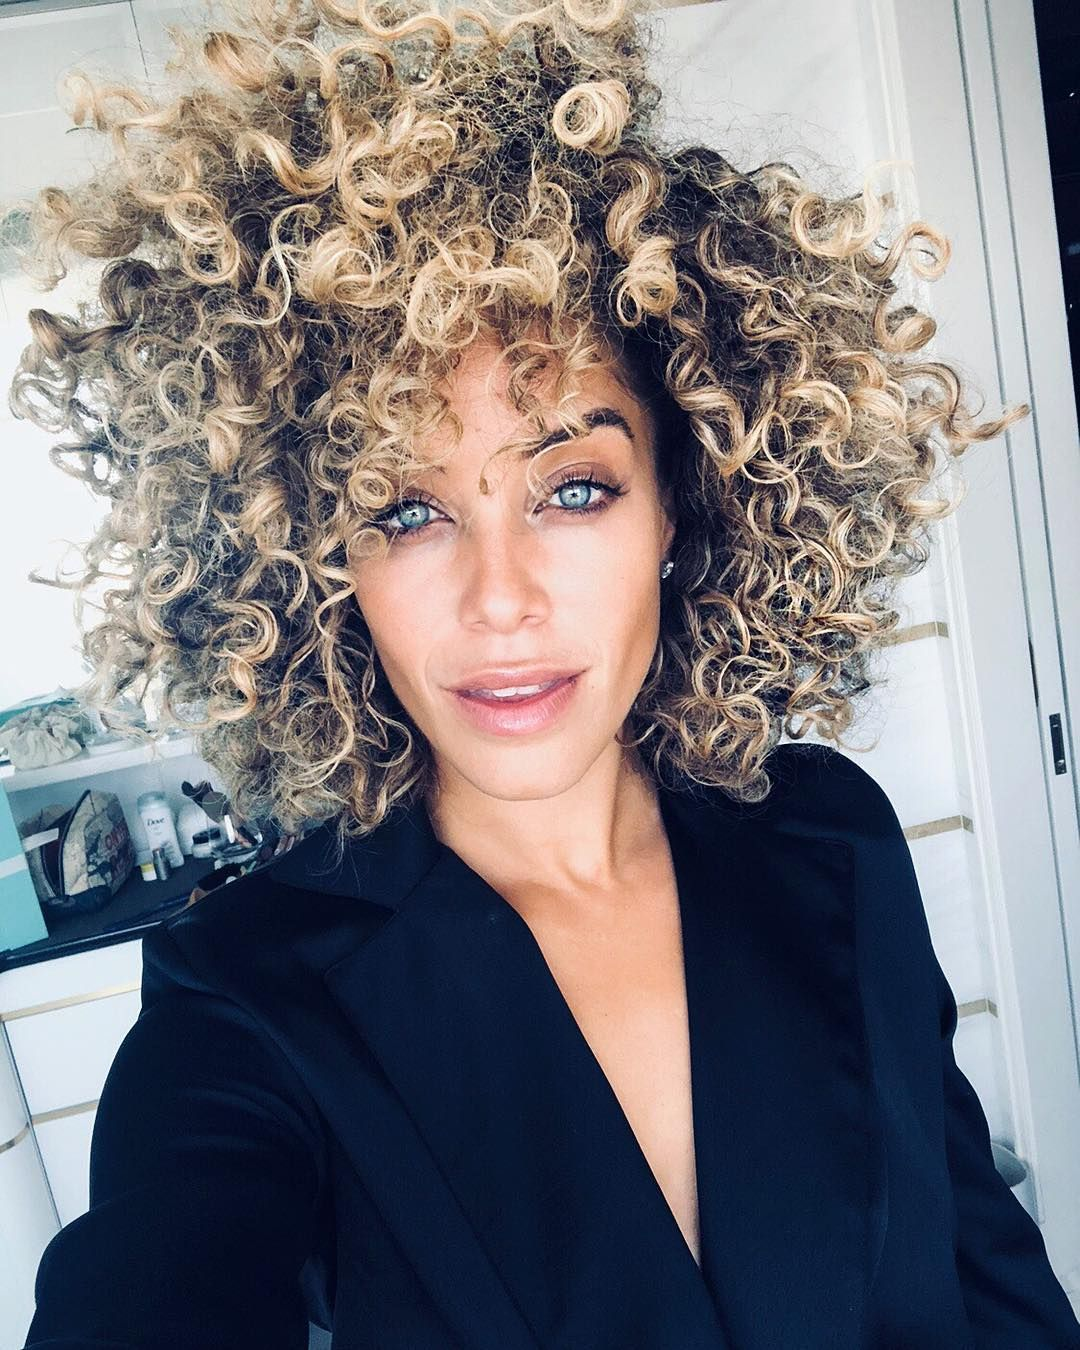 Laticia Rolle Hair Styles Rolle Shaquille O Neal Laticia rolle is an actress and producer, known for шафт (2019), someday isles (2020) and the lurking fear. laticia rolle hair styles rolle